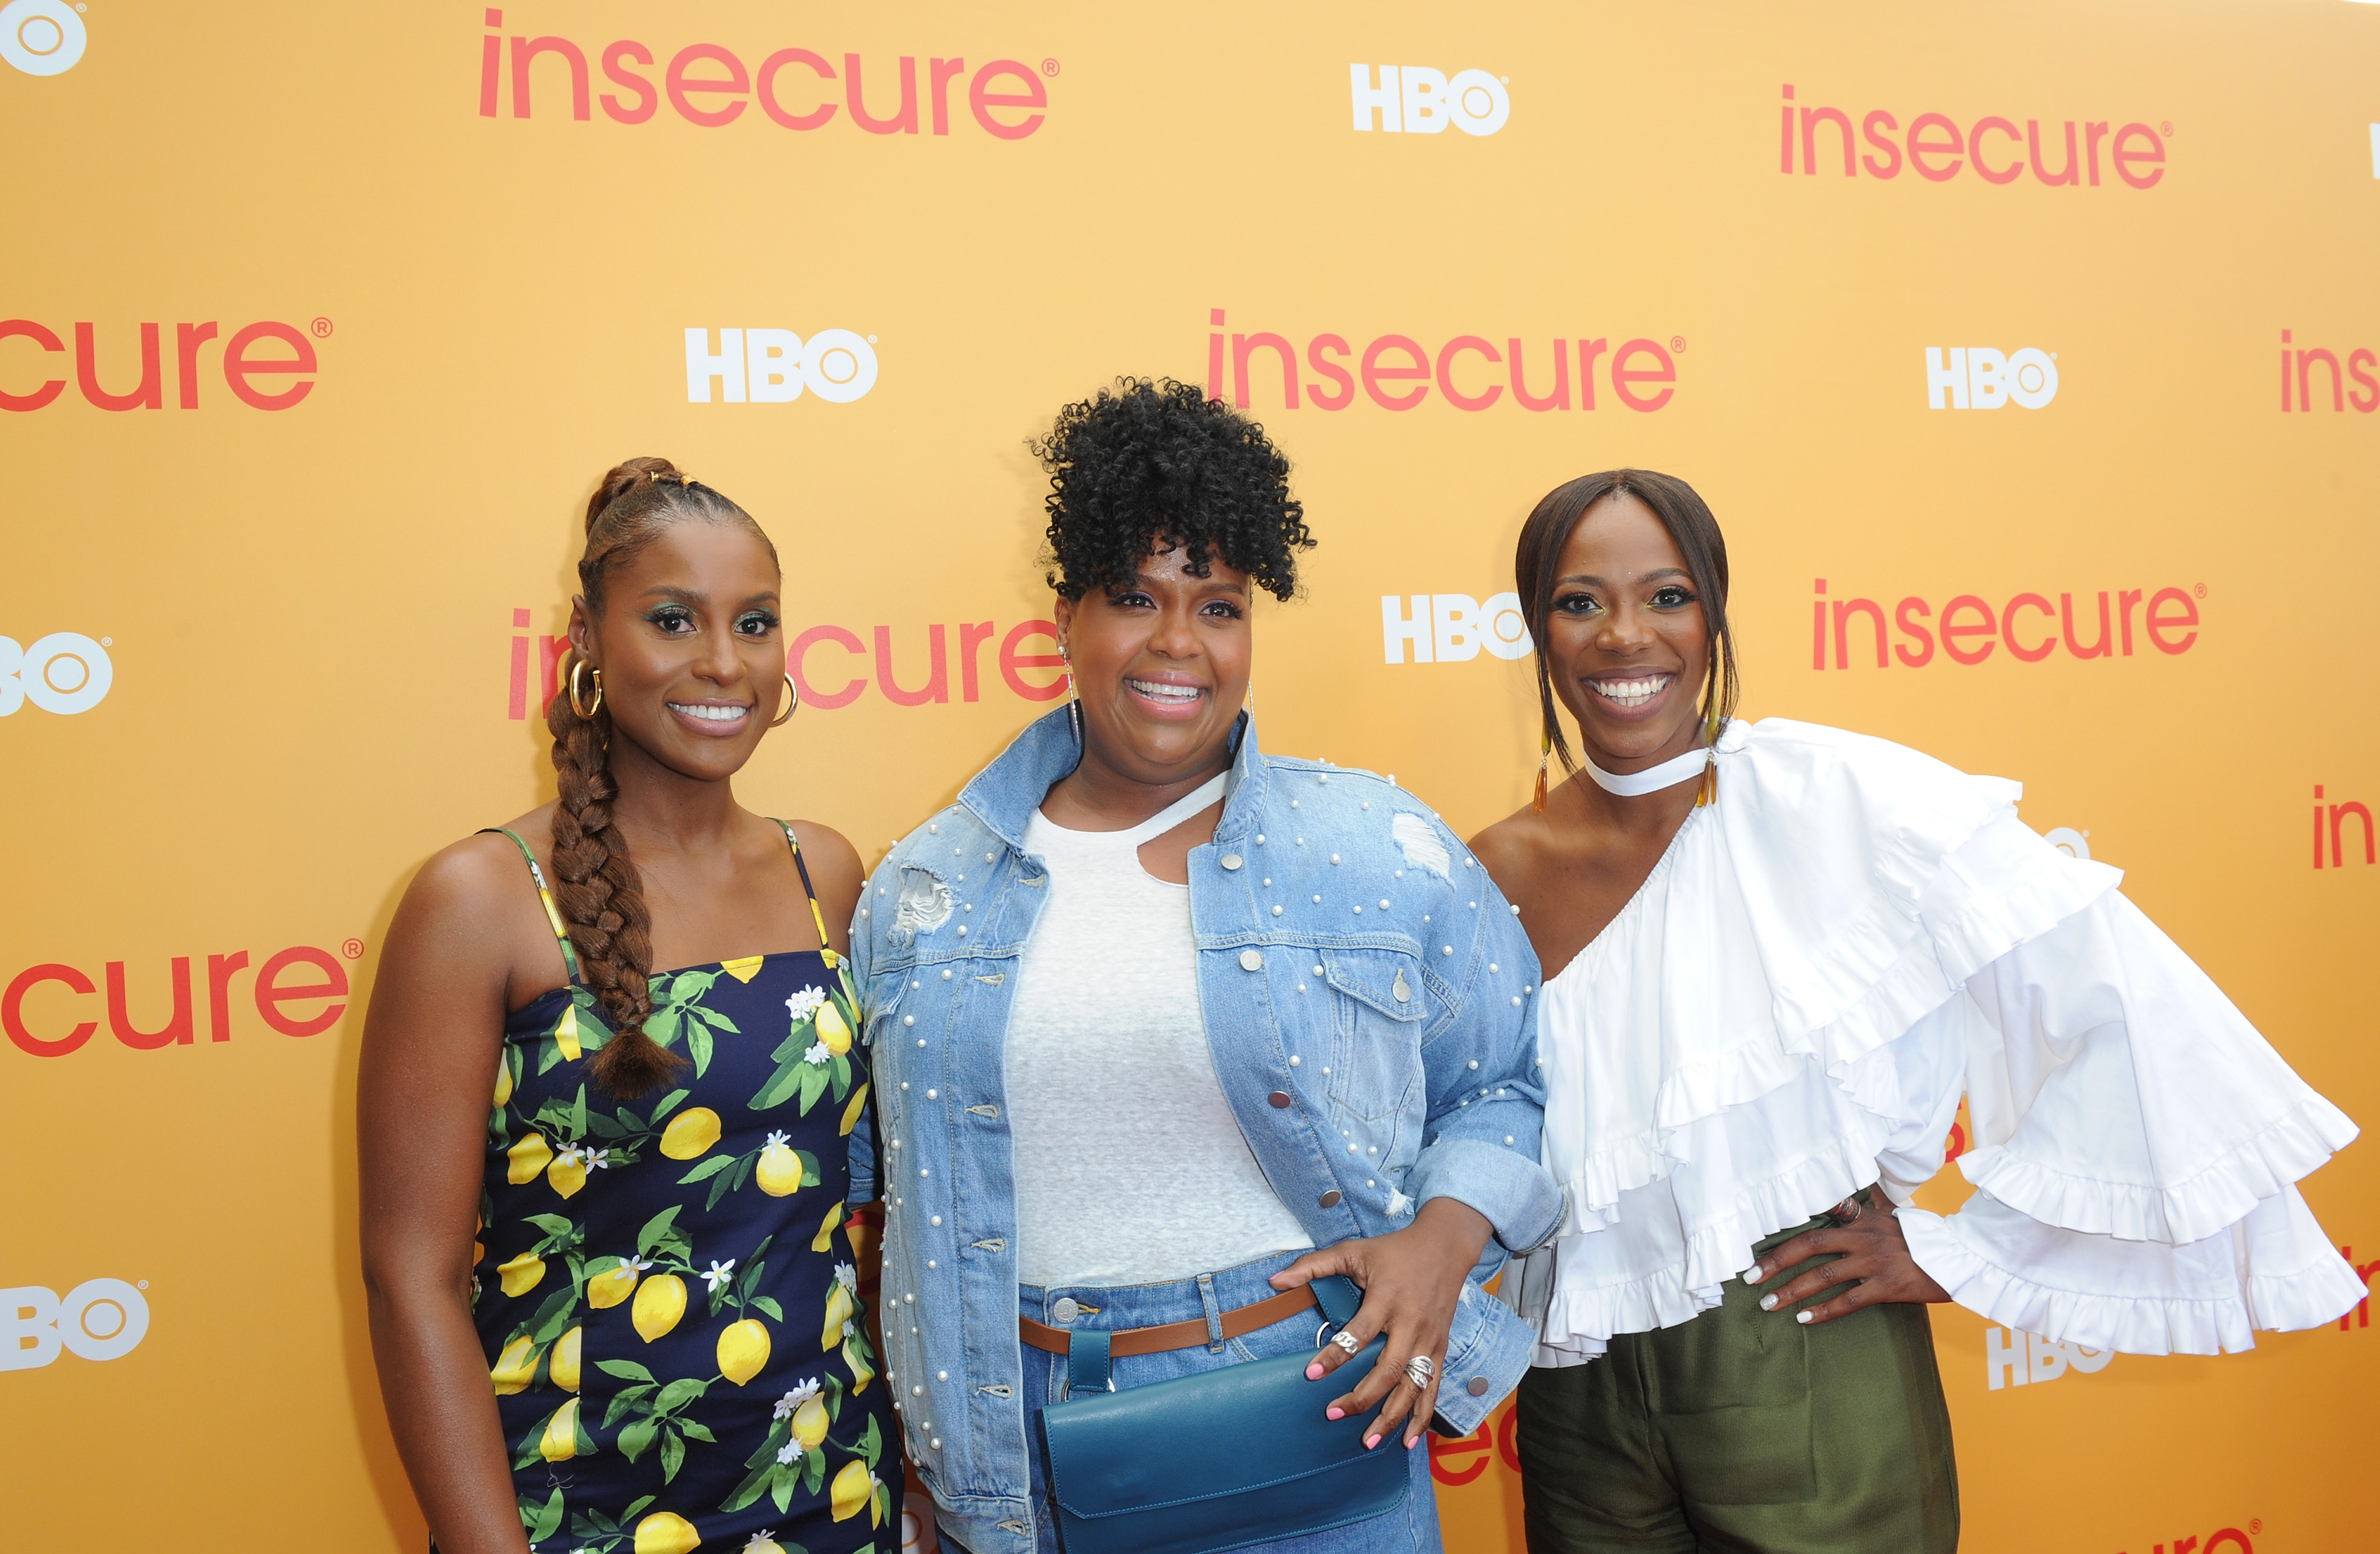 Issa Has 2 Jobs and Still Can't Pay Rent in Insecure's Season 3 Premiere